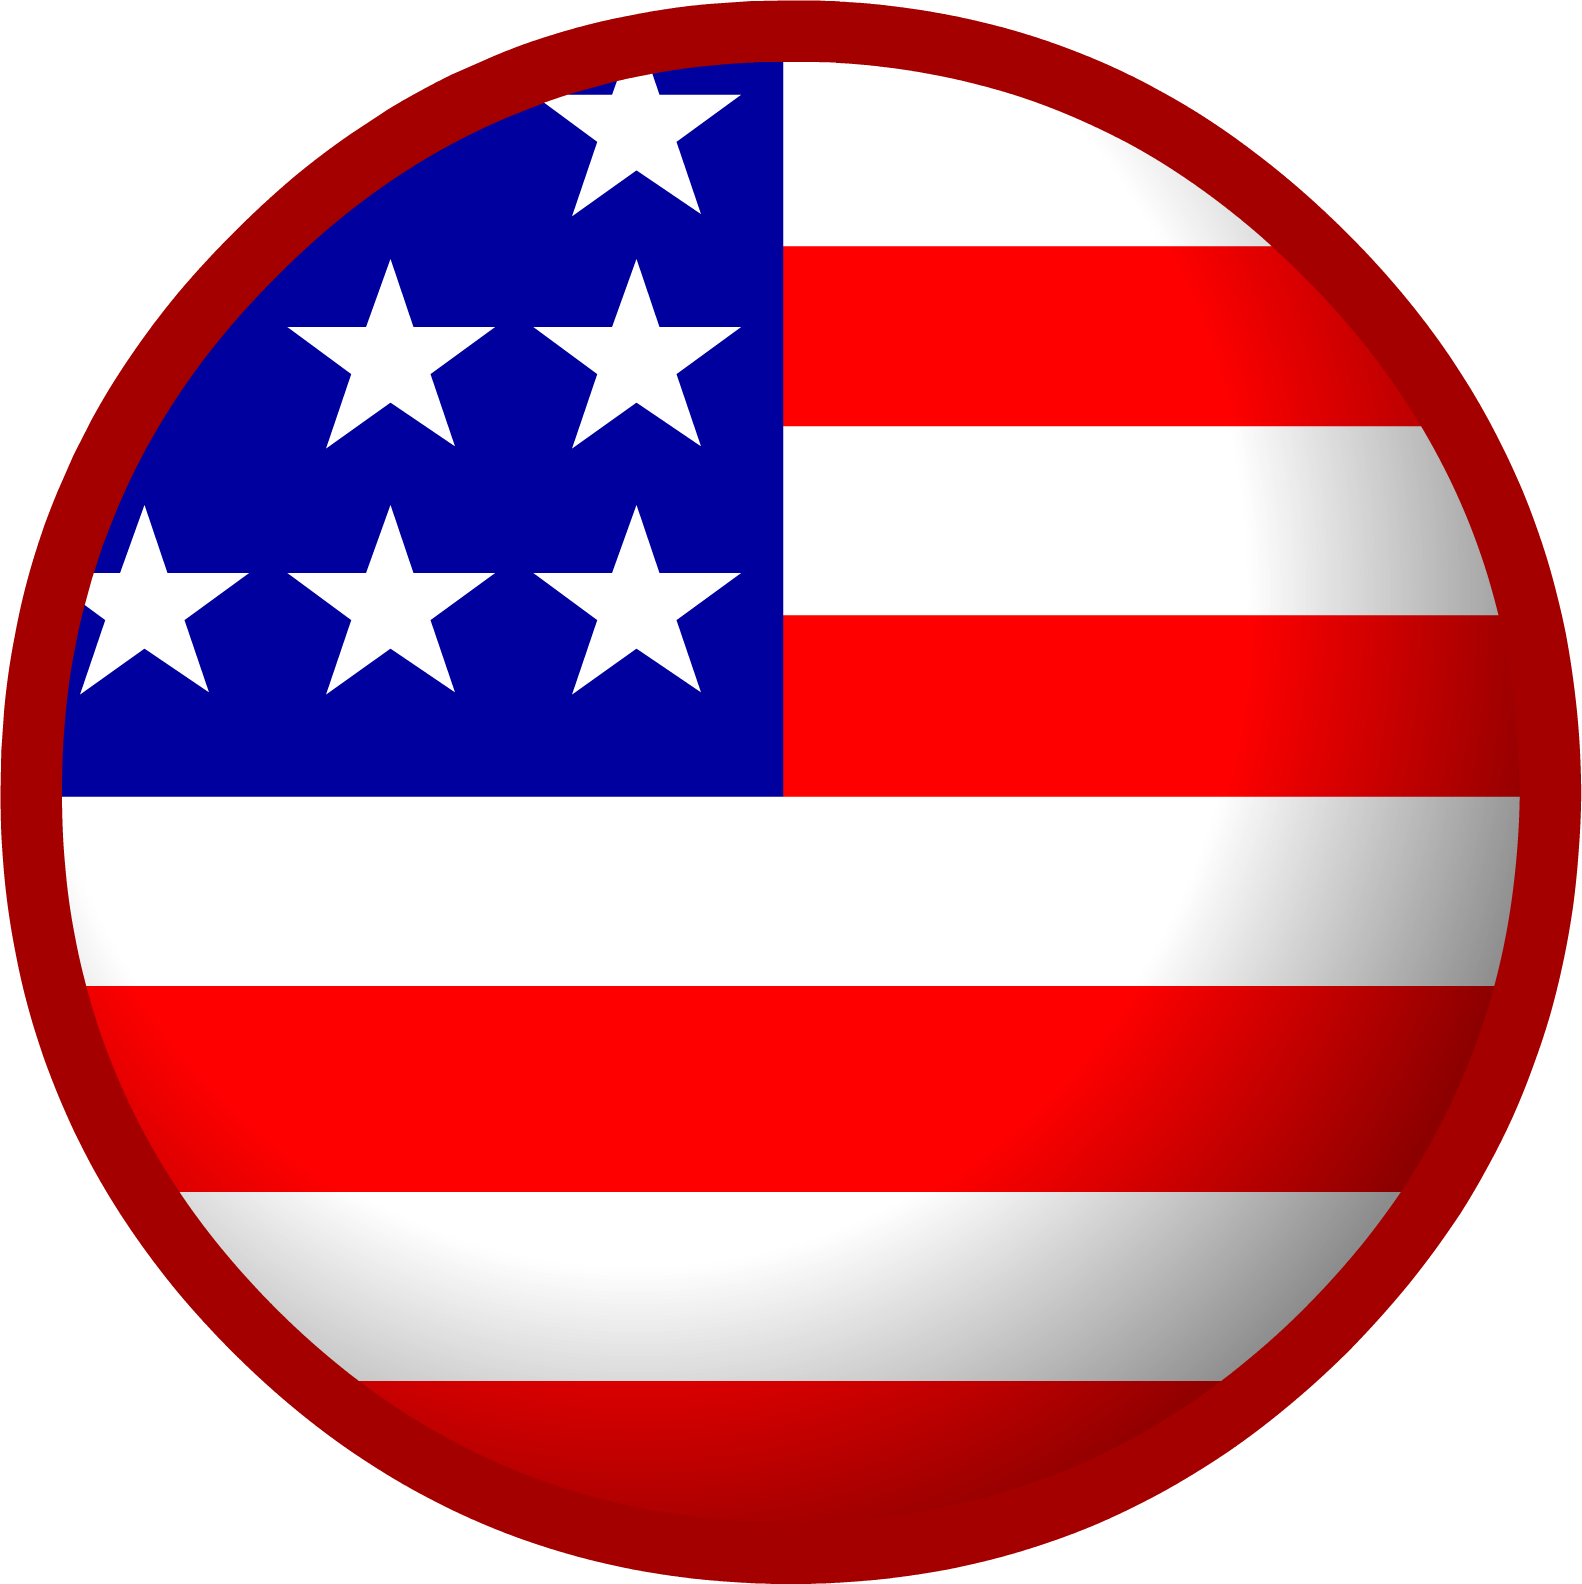 Clipart of the united states picture library United States Flag Clipart at GetDrawings.com | Free for personal ... picture library